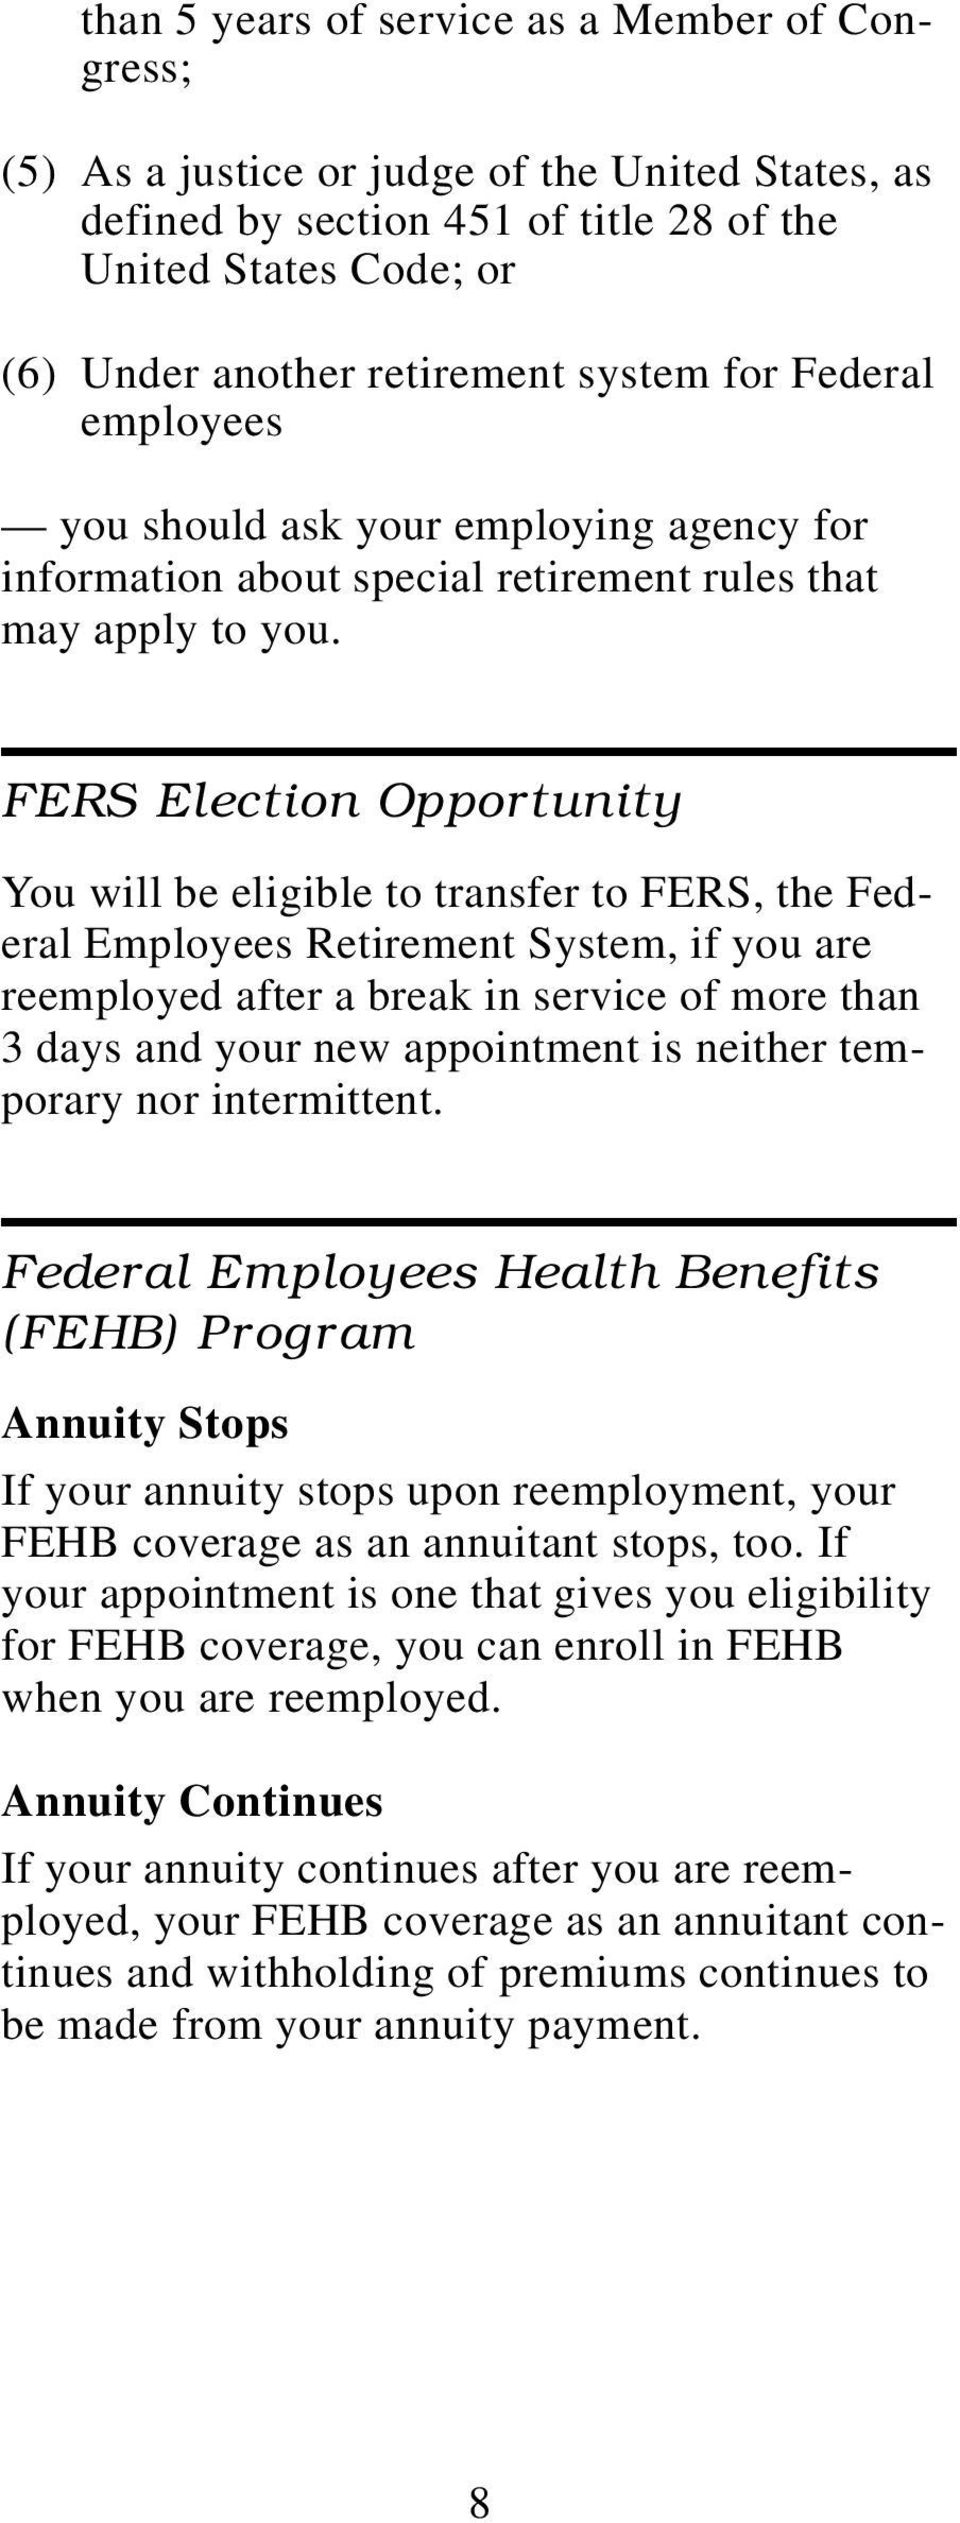 FERS Election Opportunity You will be eligible to transfer to FERS, the Federal Employees Retirement System, if you are reemployed after a break in service of more than 3 days and your new